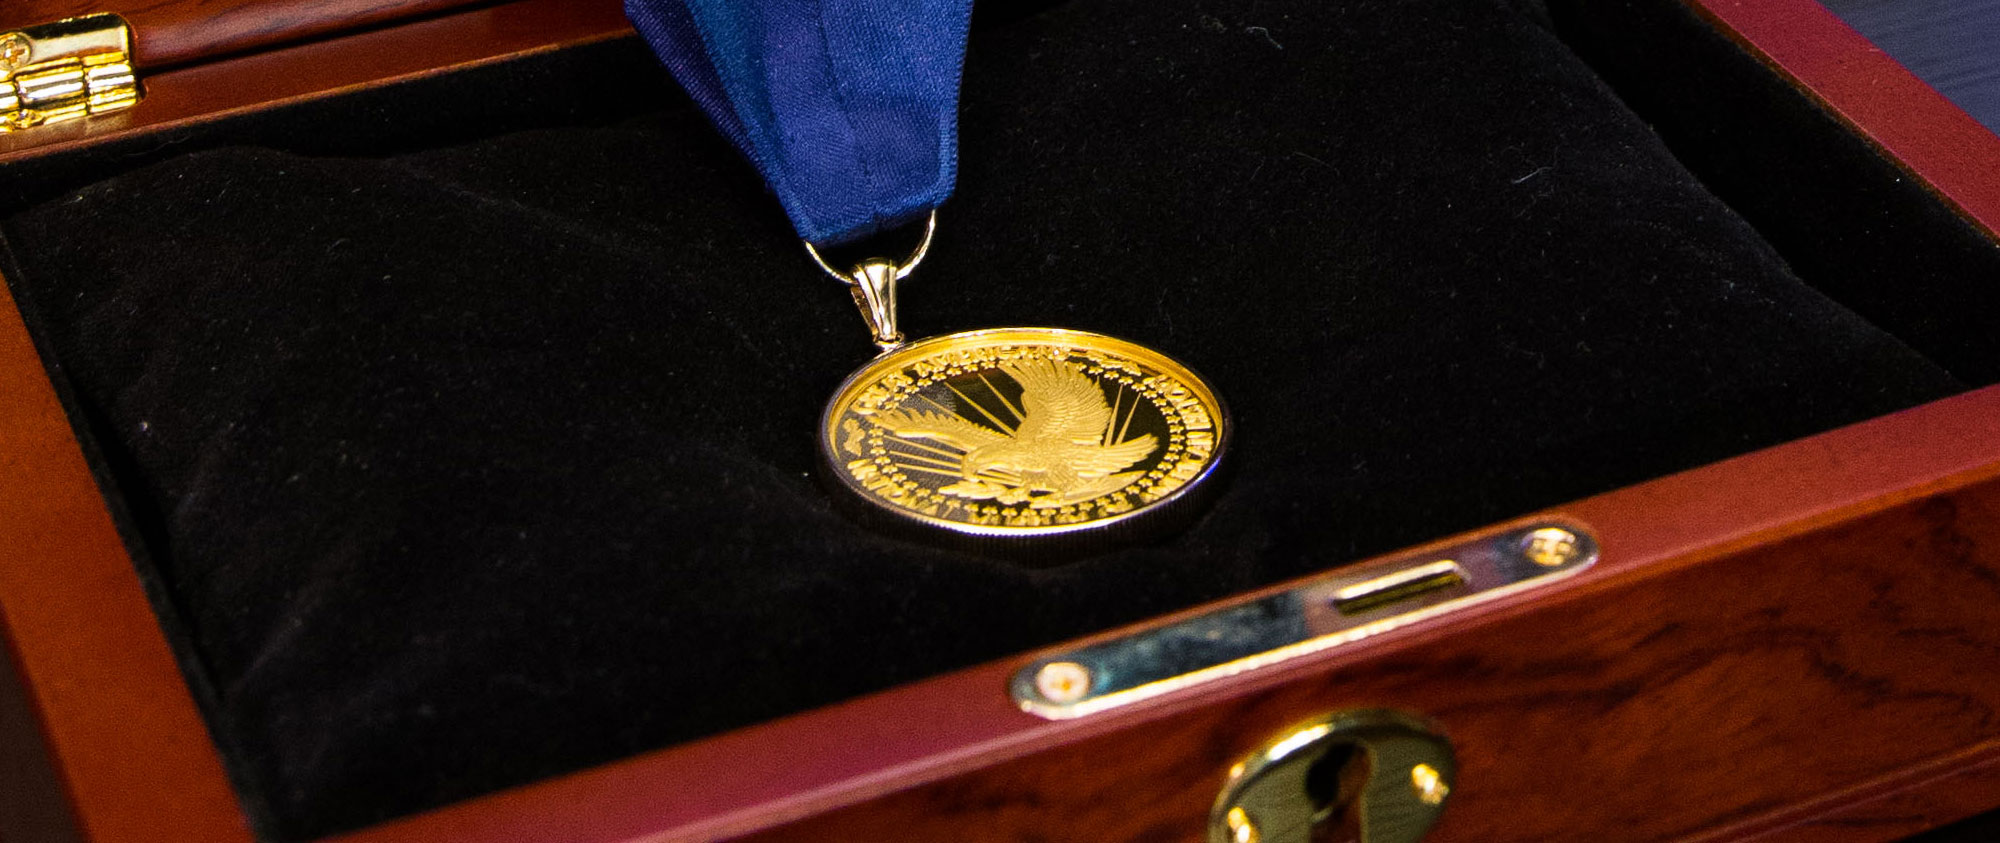 The Medal photo